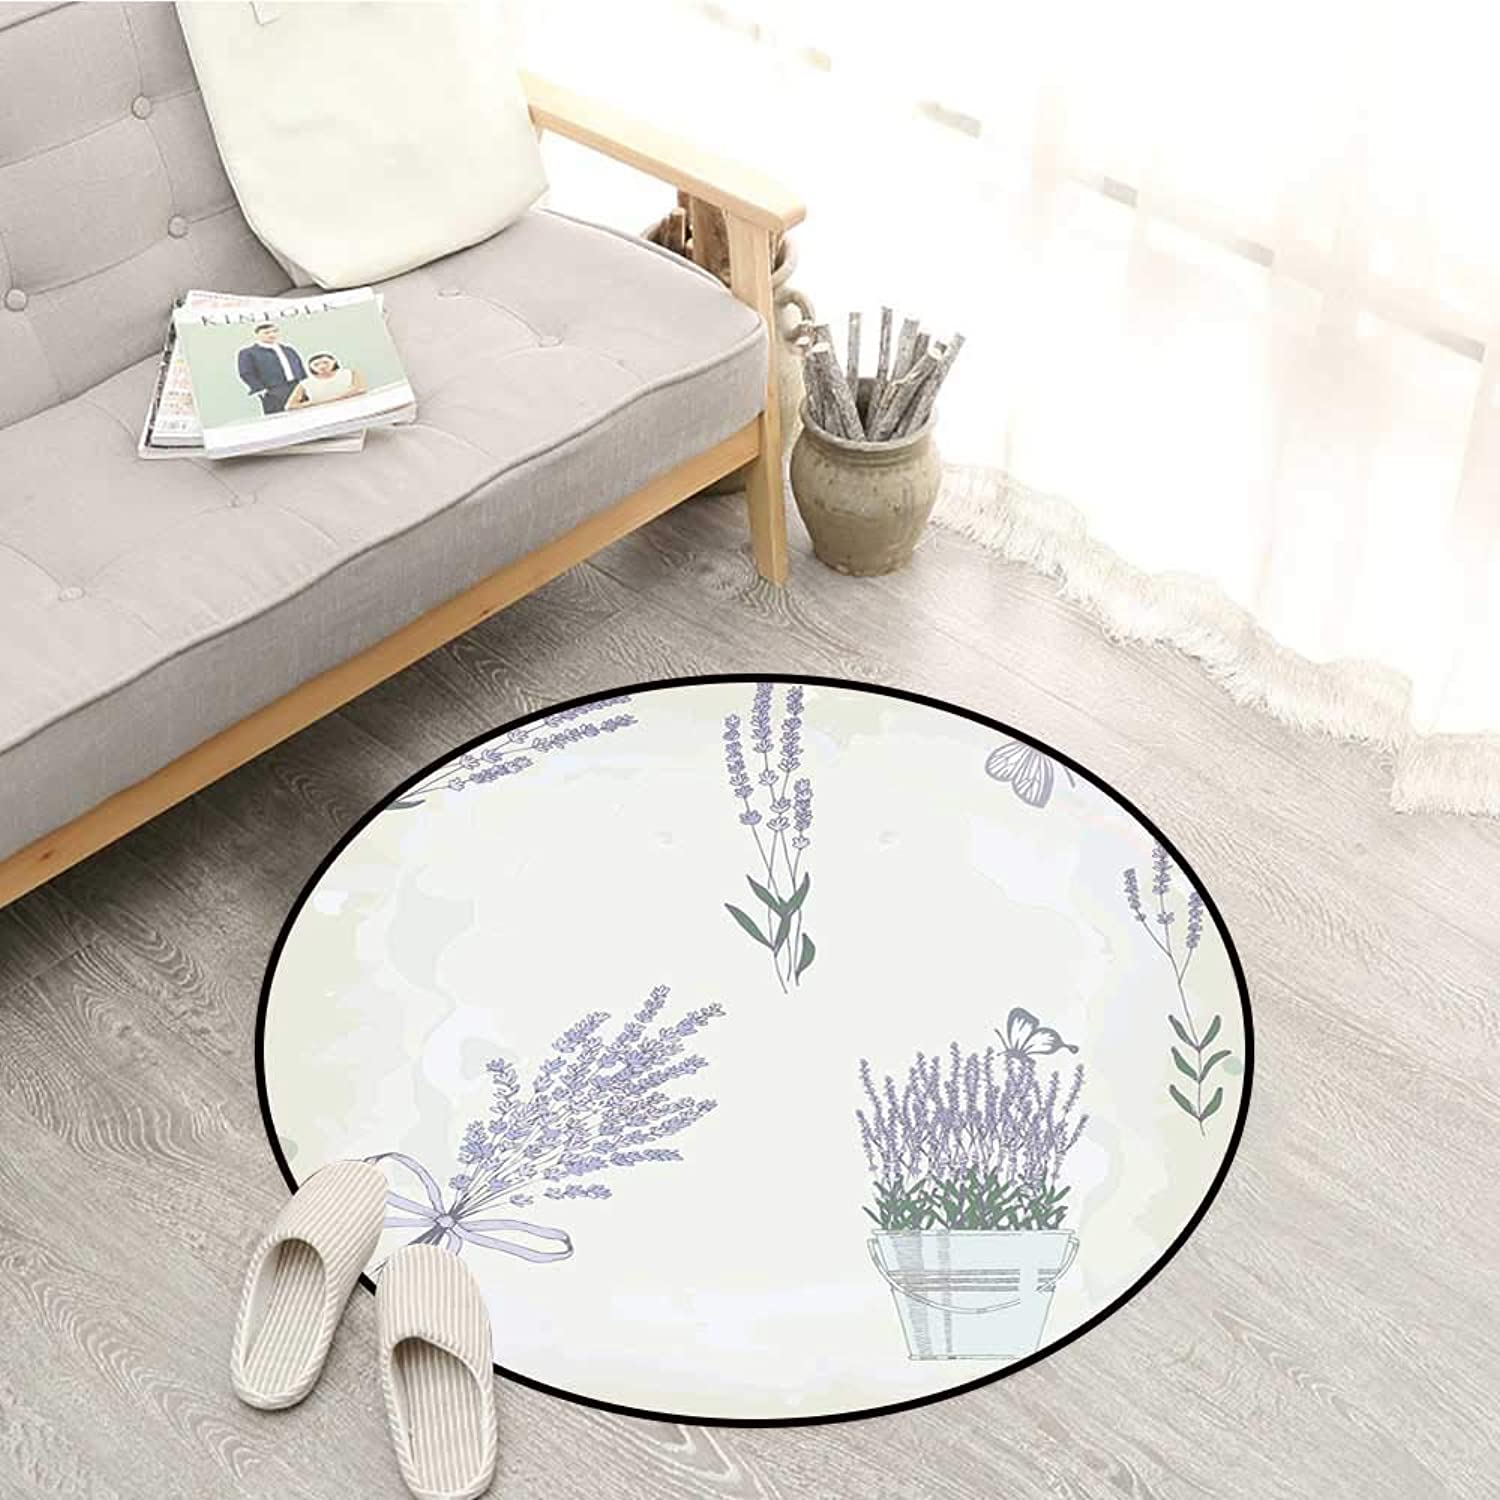 Lavender Skid-Resistant Rugs Floral Vintage Composition with Rustic Elements Butterflies Bouquets Sofa Coffee Table Mat 4'3  Pale Mauve Hunter Green